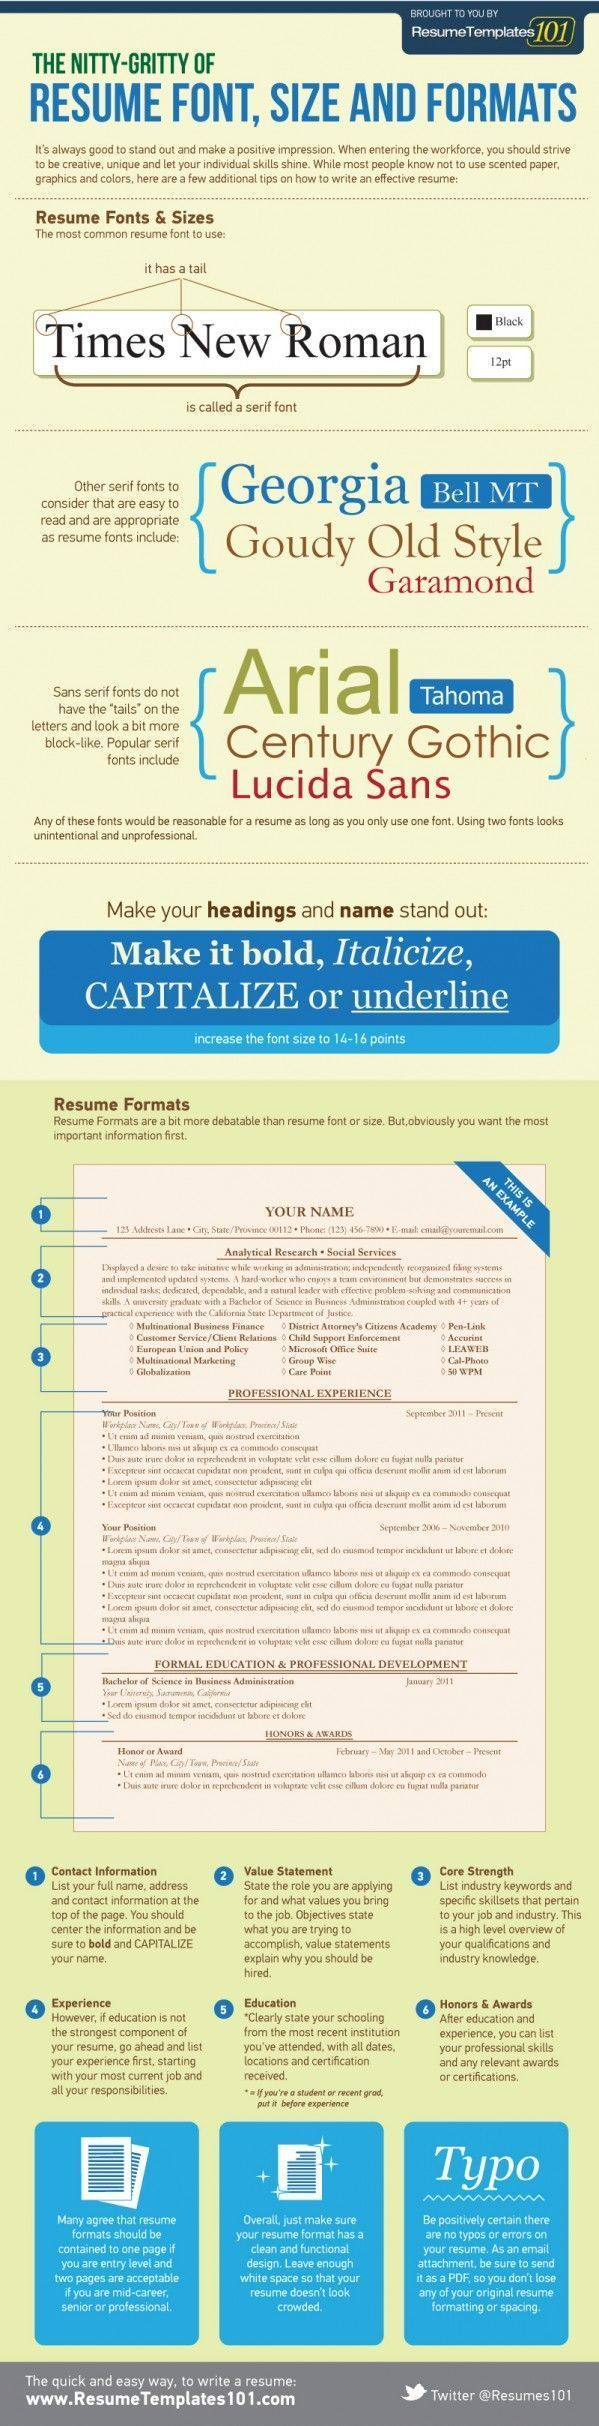 Resume Layout Tips Endearing 35 Best Resume Images On Pinterest  Resume Ideas Resume Tips And Gym